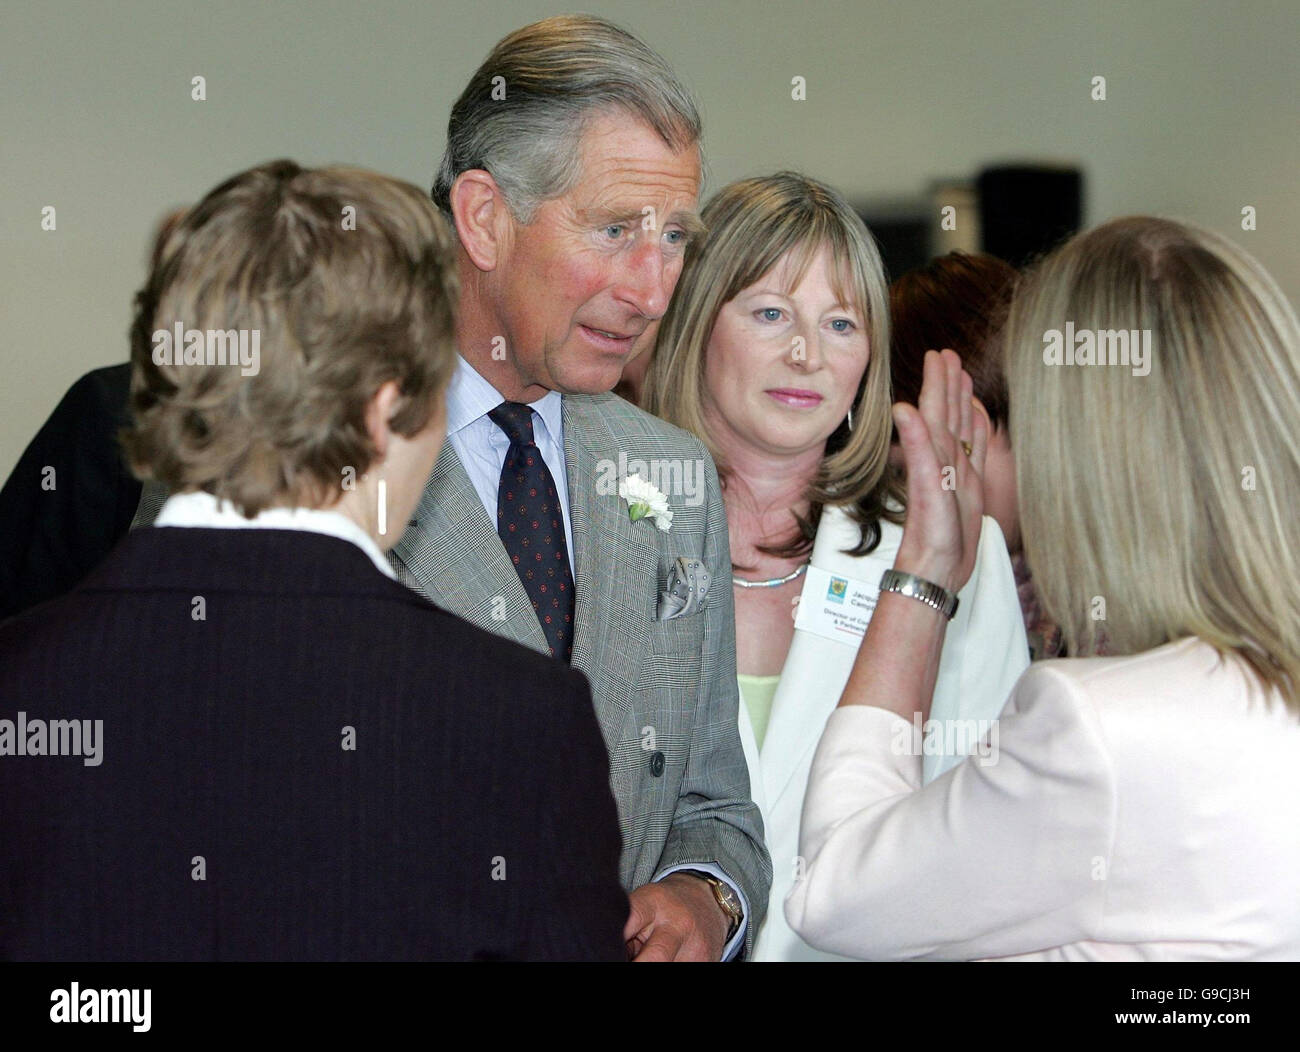 The Prince of Wales speaks with local residents who were caught up in the Buncefield oil depot fire last year, during - Stock Image